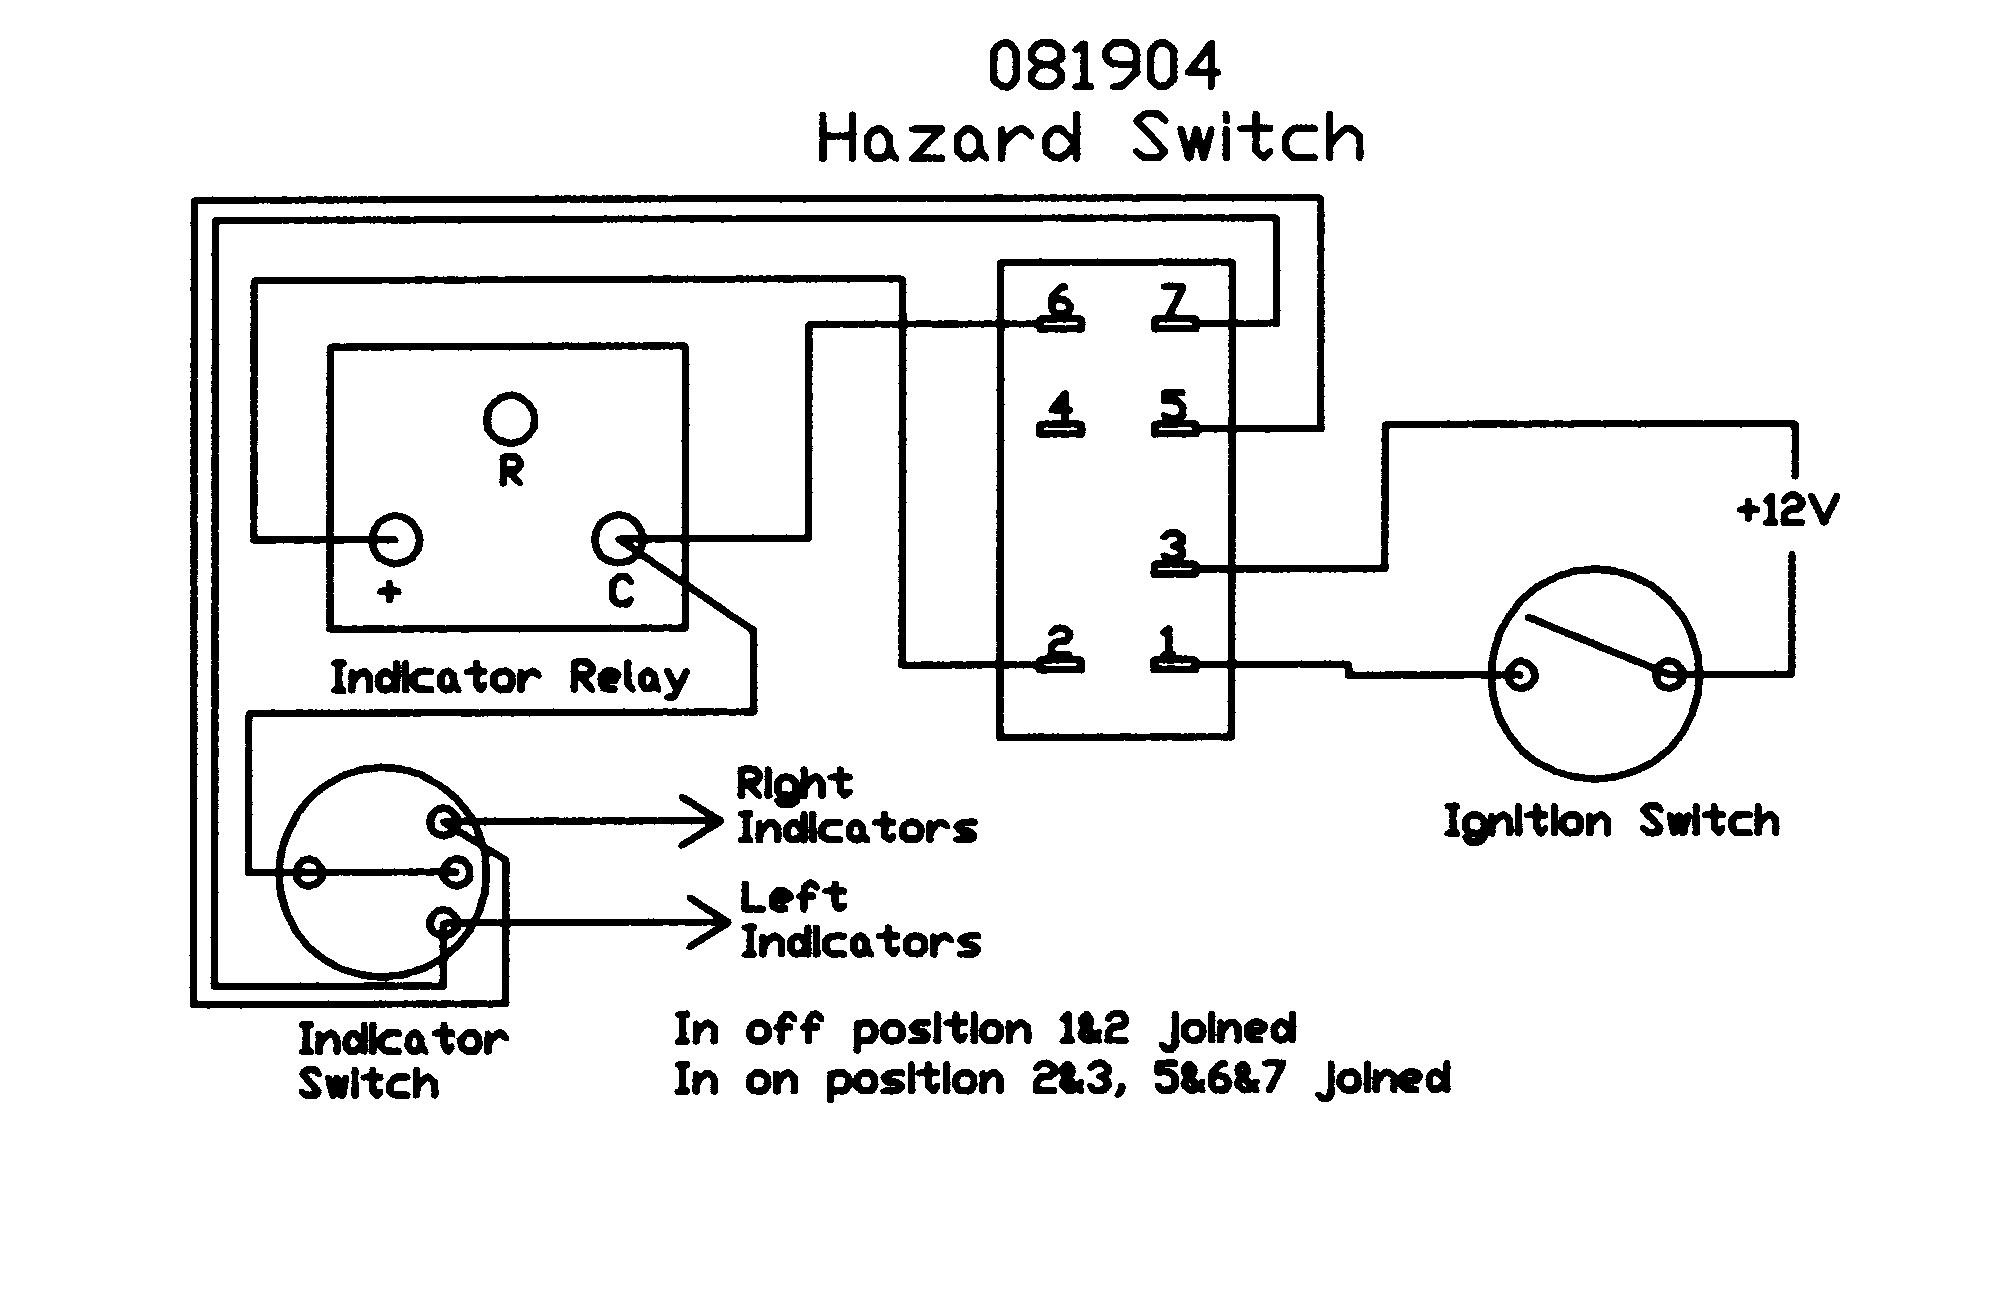 Ignition Switch Schematic Symbol